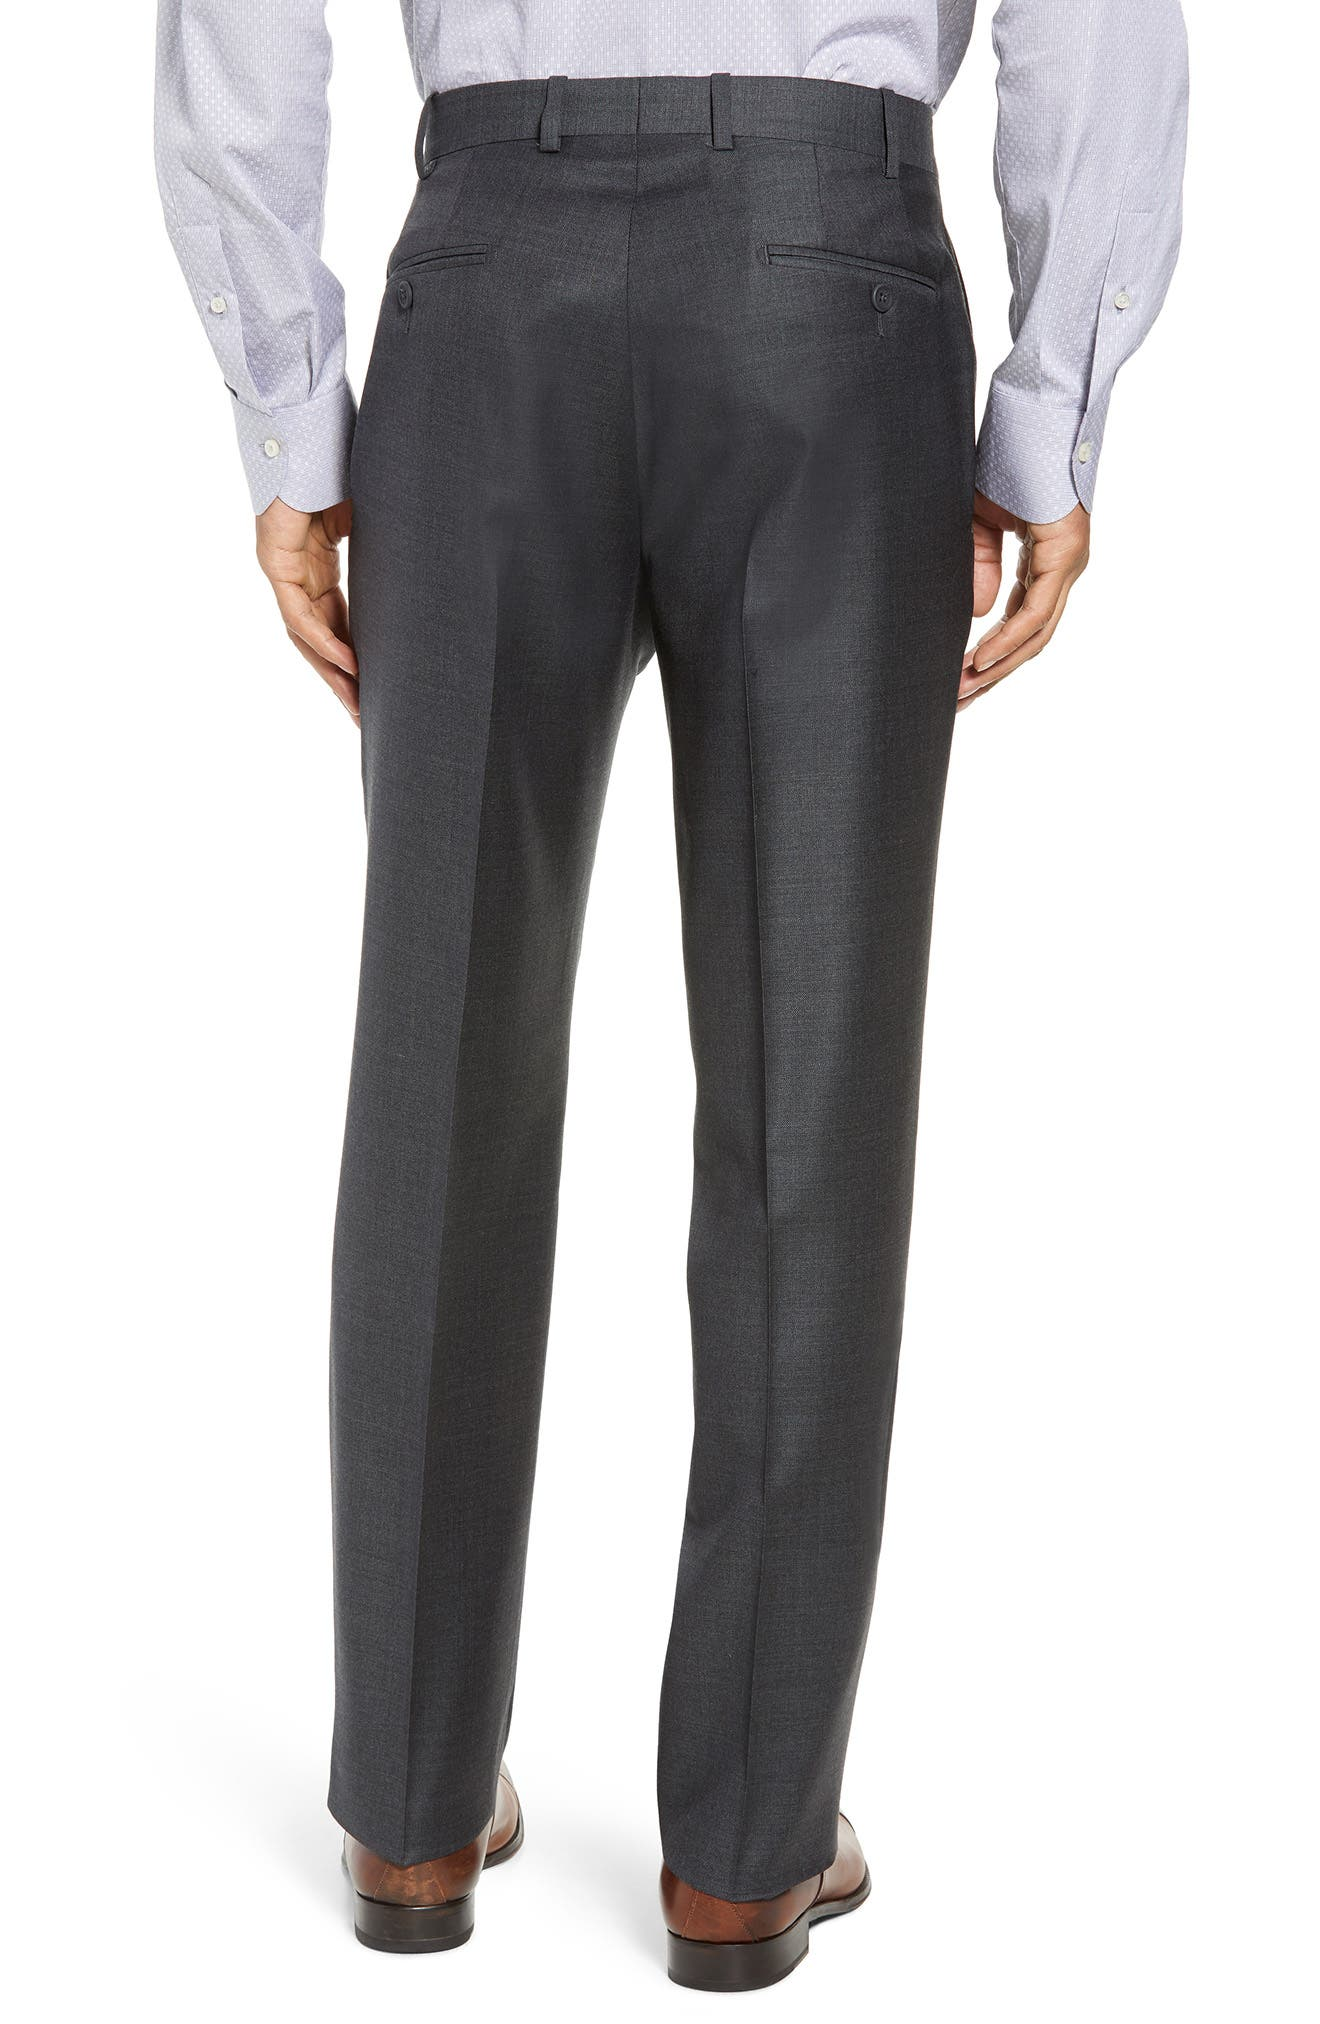 Torino Flat Front Solid Wool Trousers,                             Alternate thumbnail 2, color,                             Charcoal